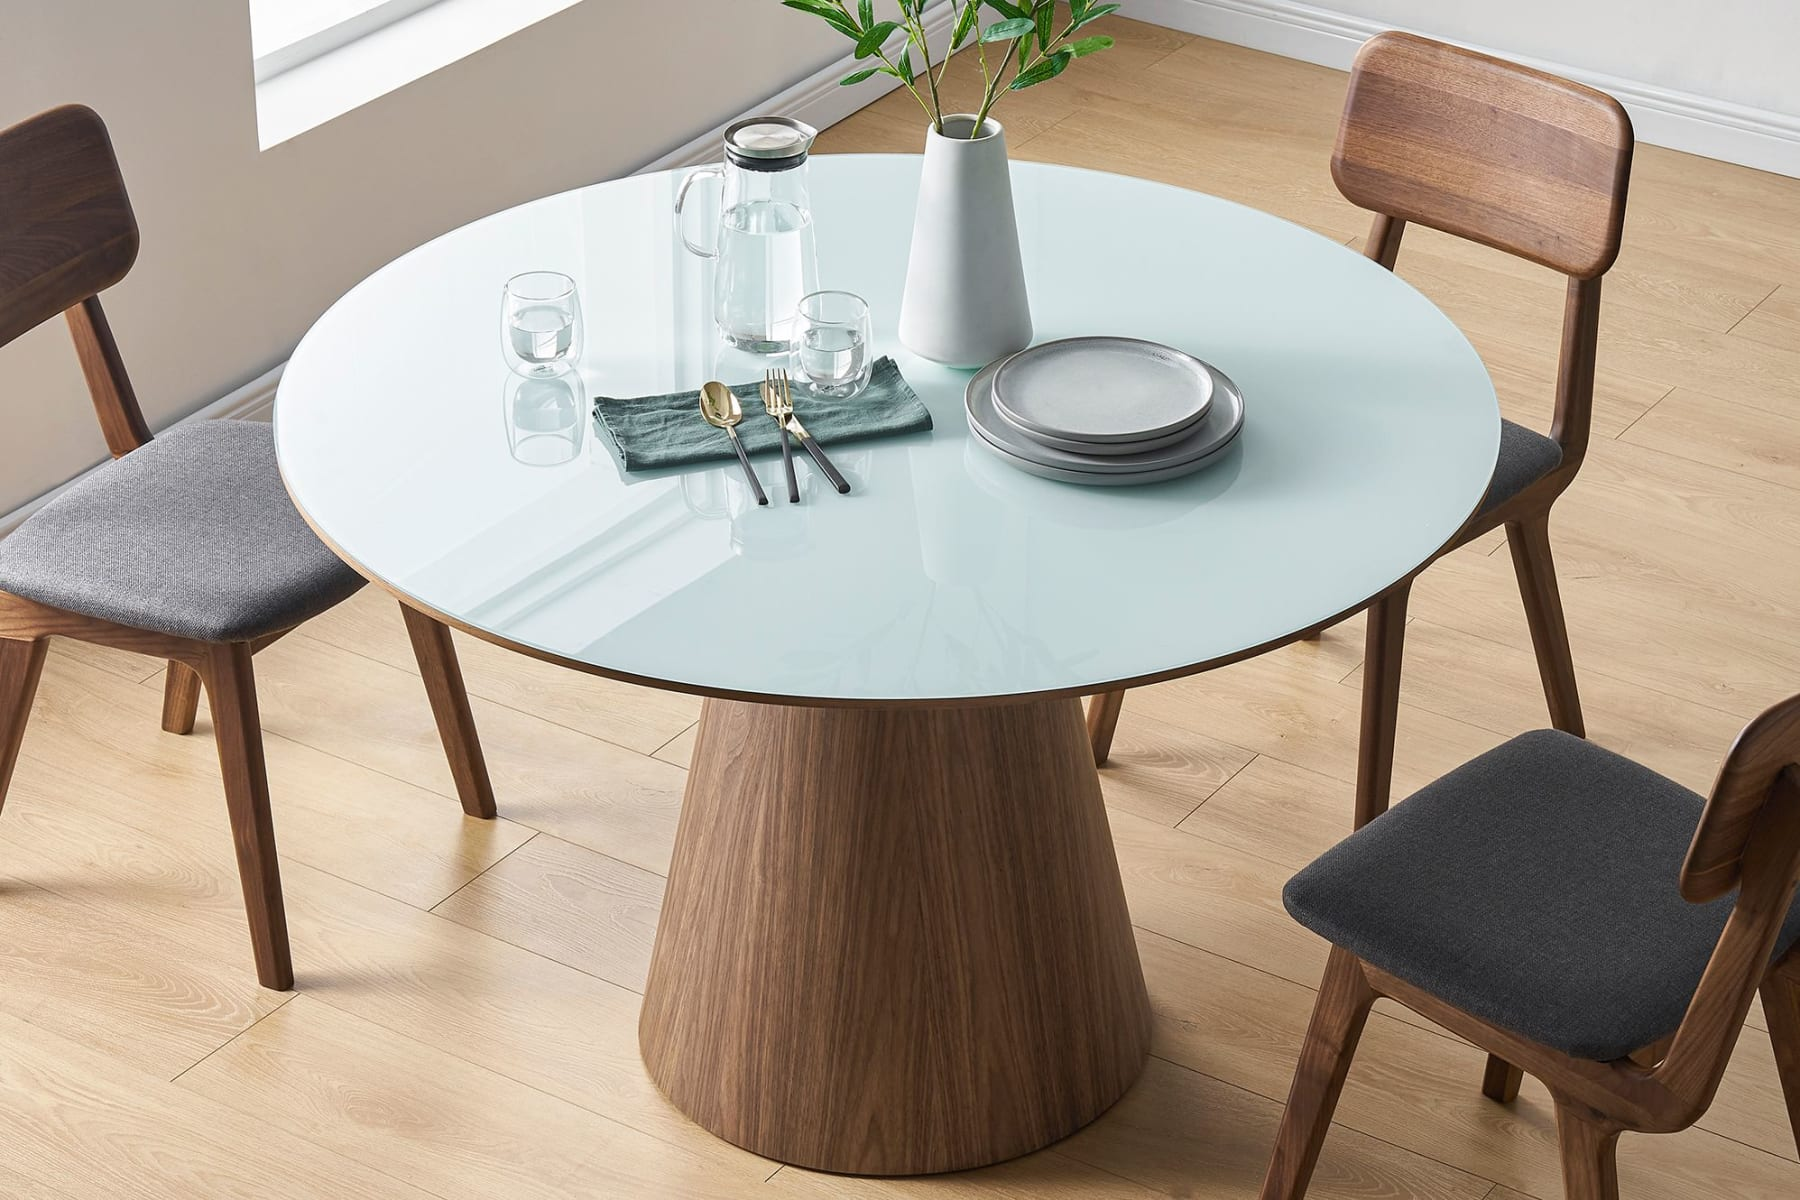 Round dining table glass tabletop, chairs and pastel painting on sideboard